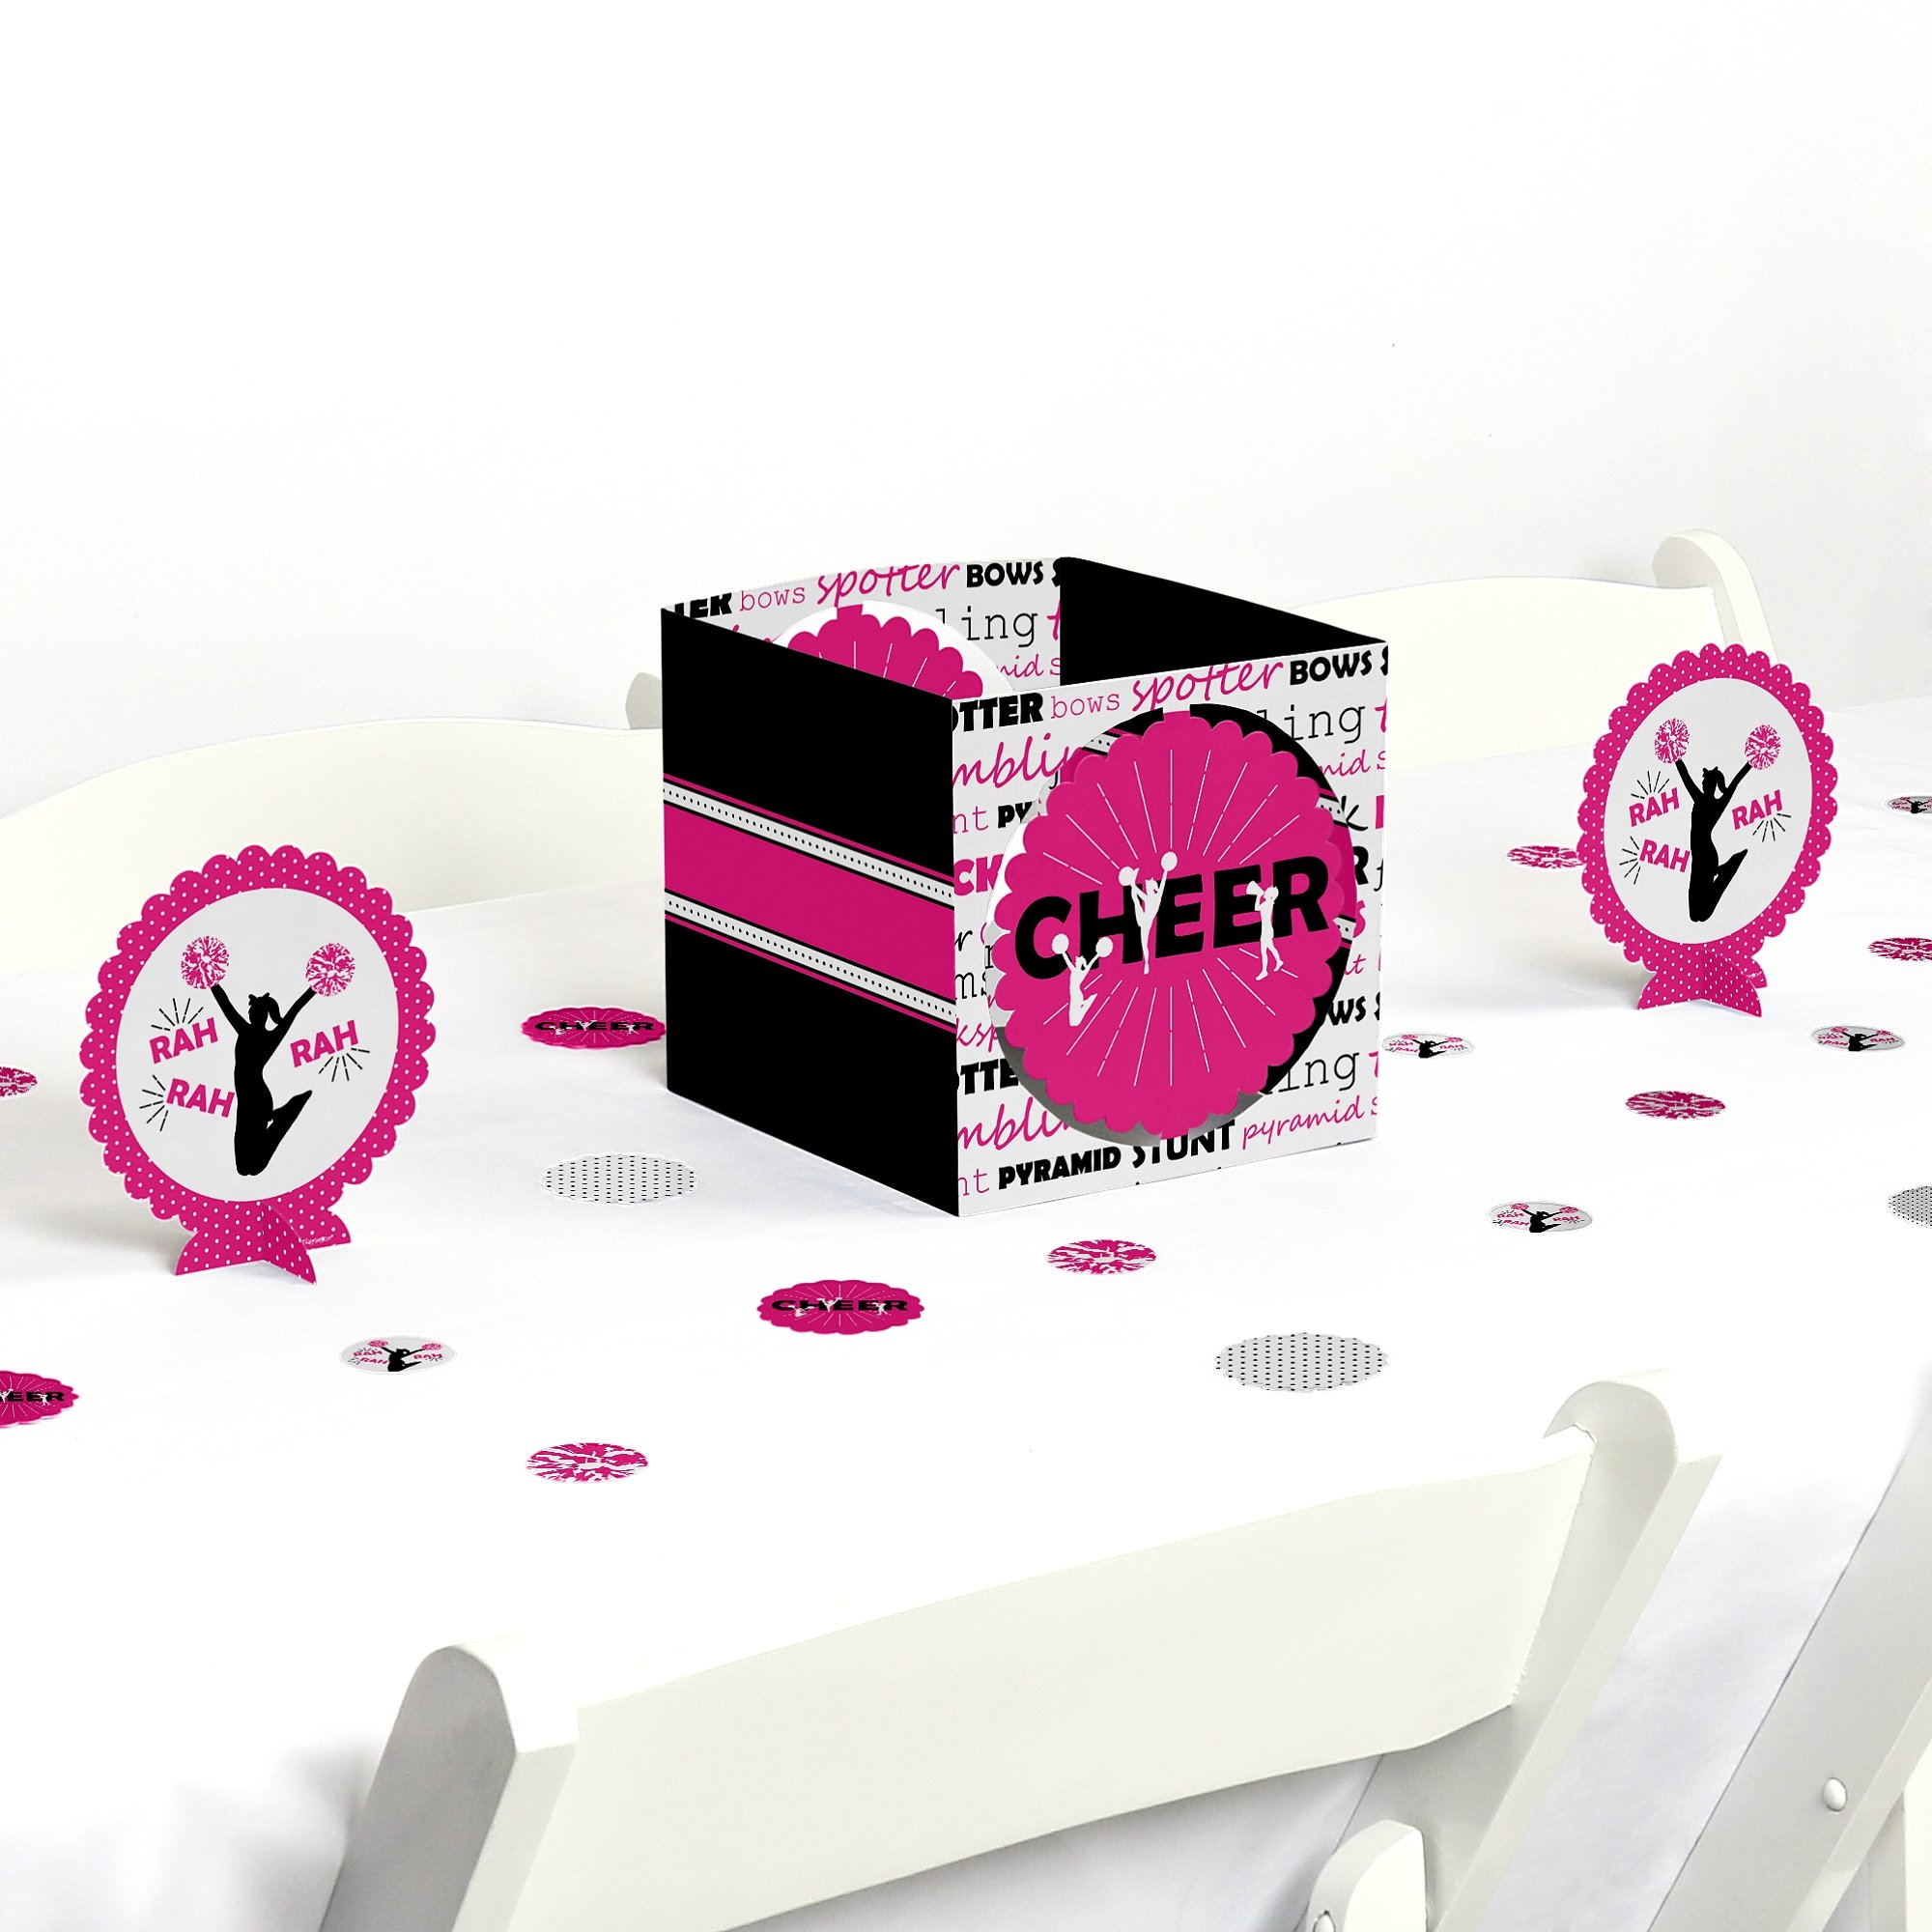 Big Dot of Happiness We've Got Spirit - Cheerleading - Birthday Party or Cheerleader Party Centerpiece & Table Decoration Kit by Big Dot of Happiness